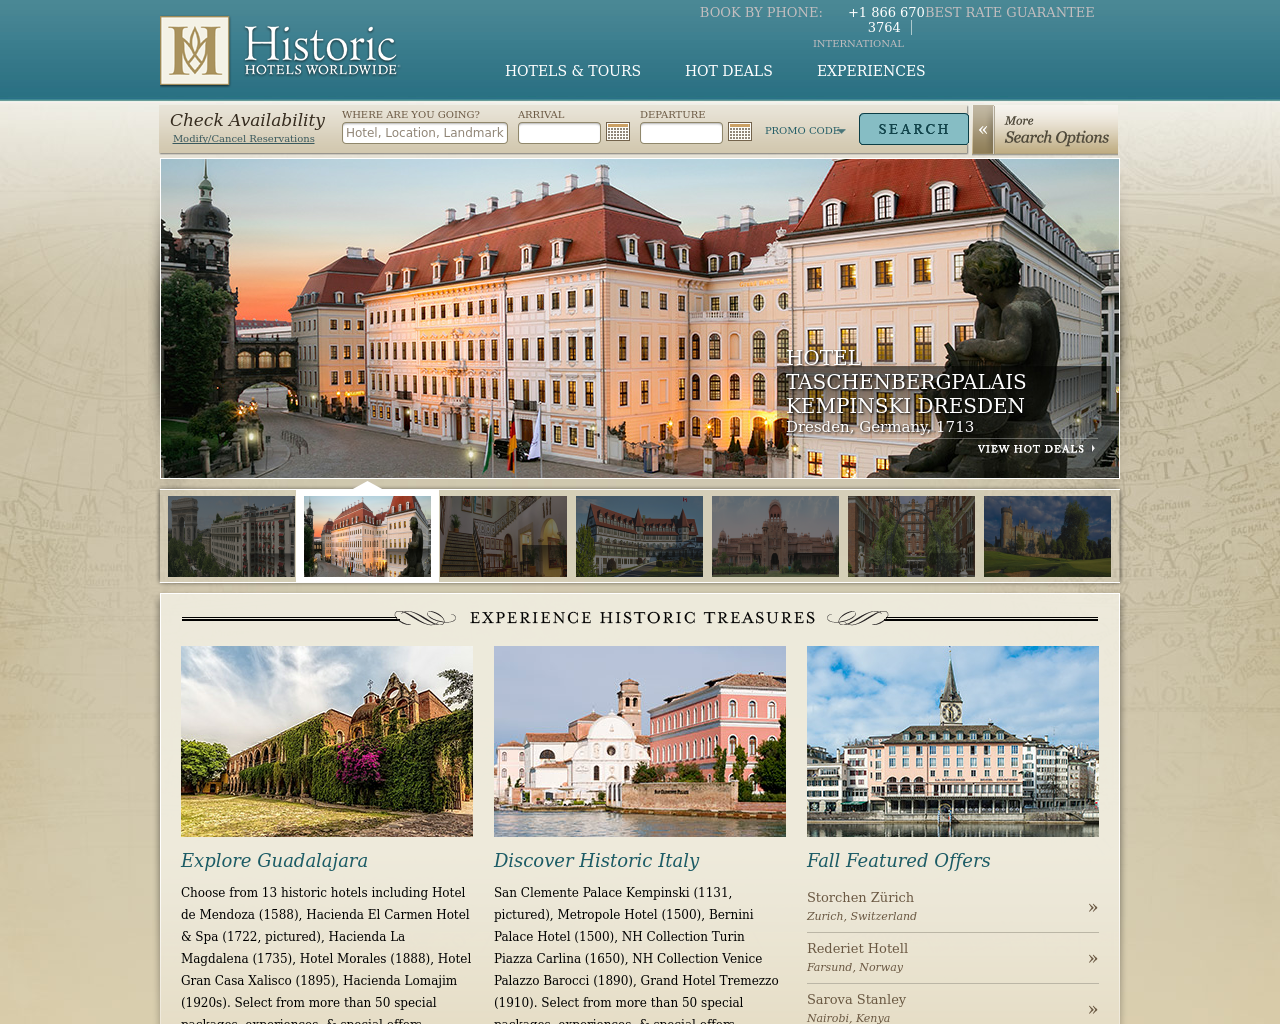 Historic-Hotels-Worldwide-Advertising-Reviews-Pricing